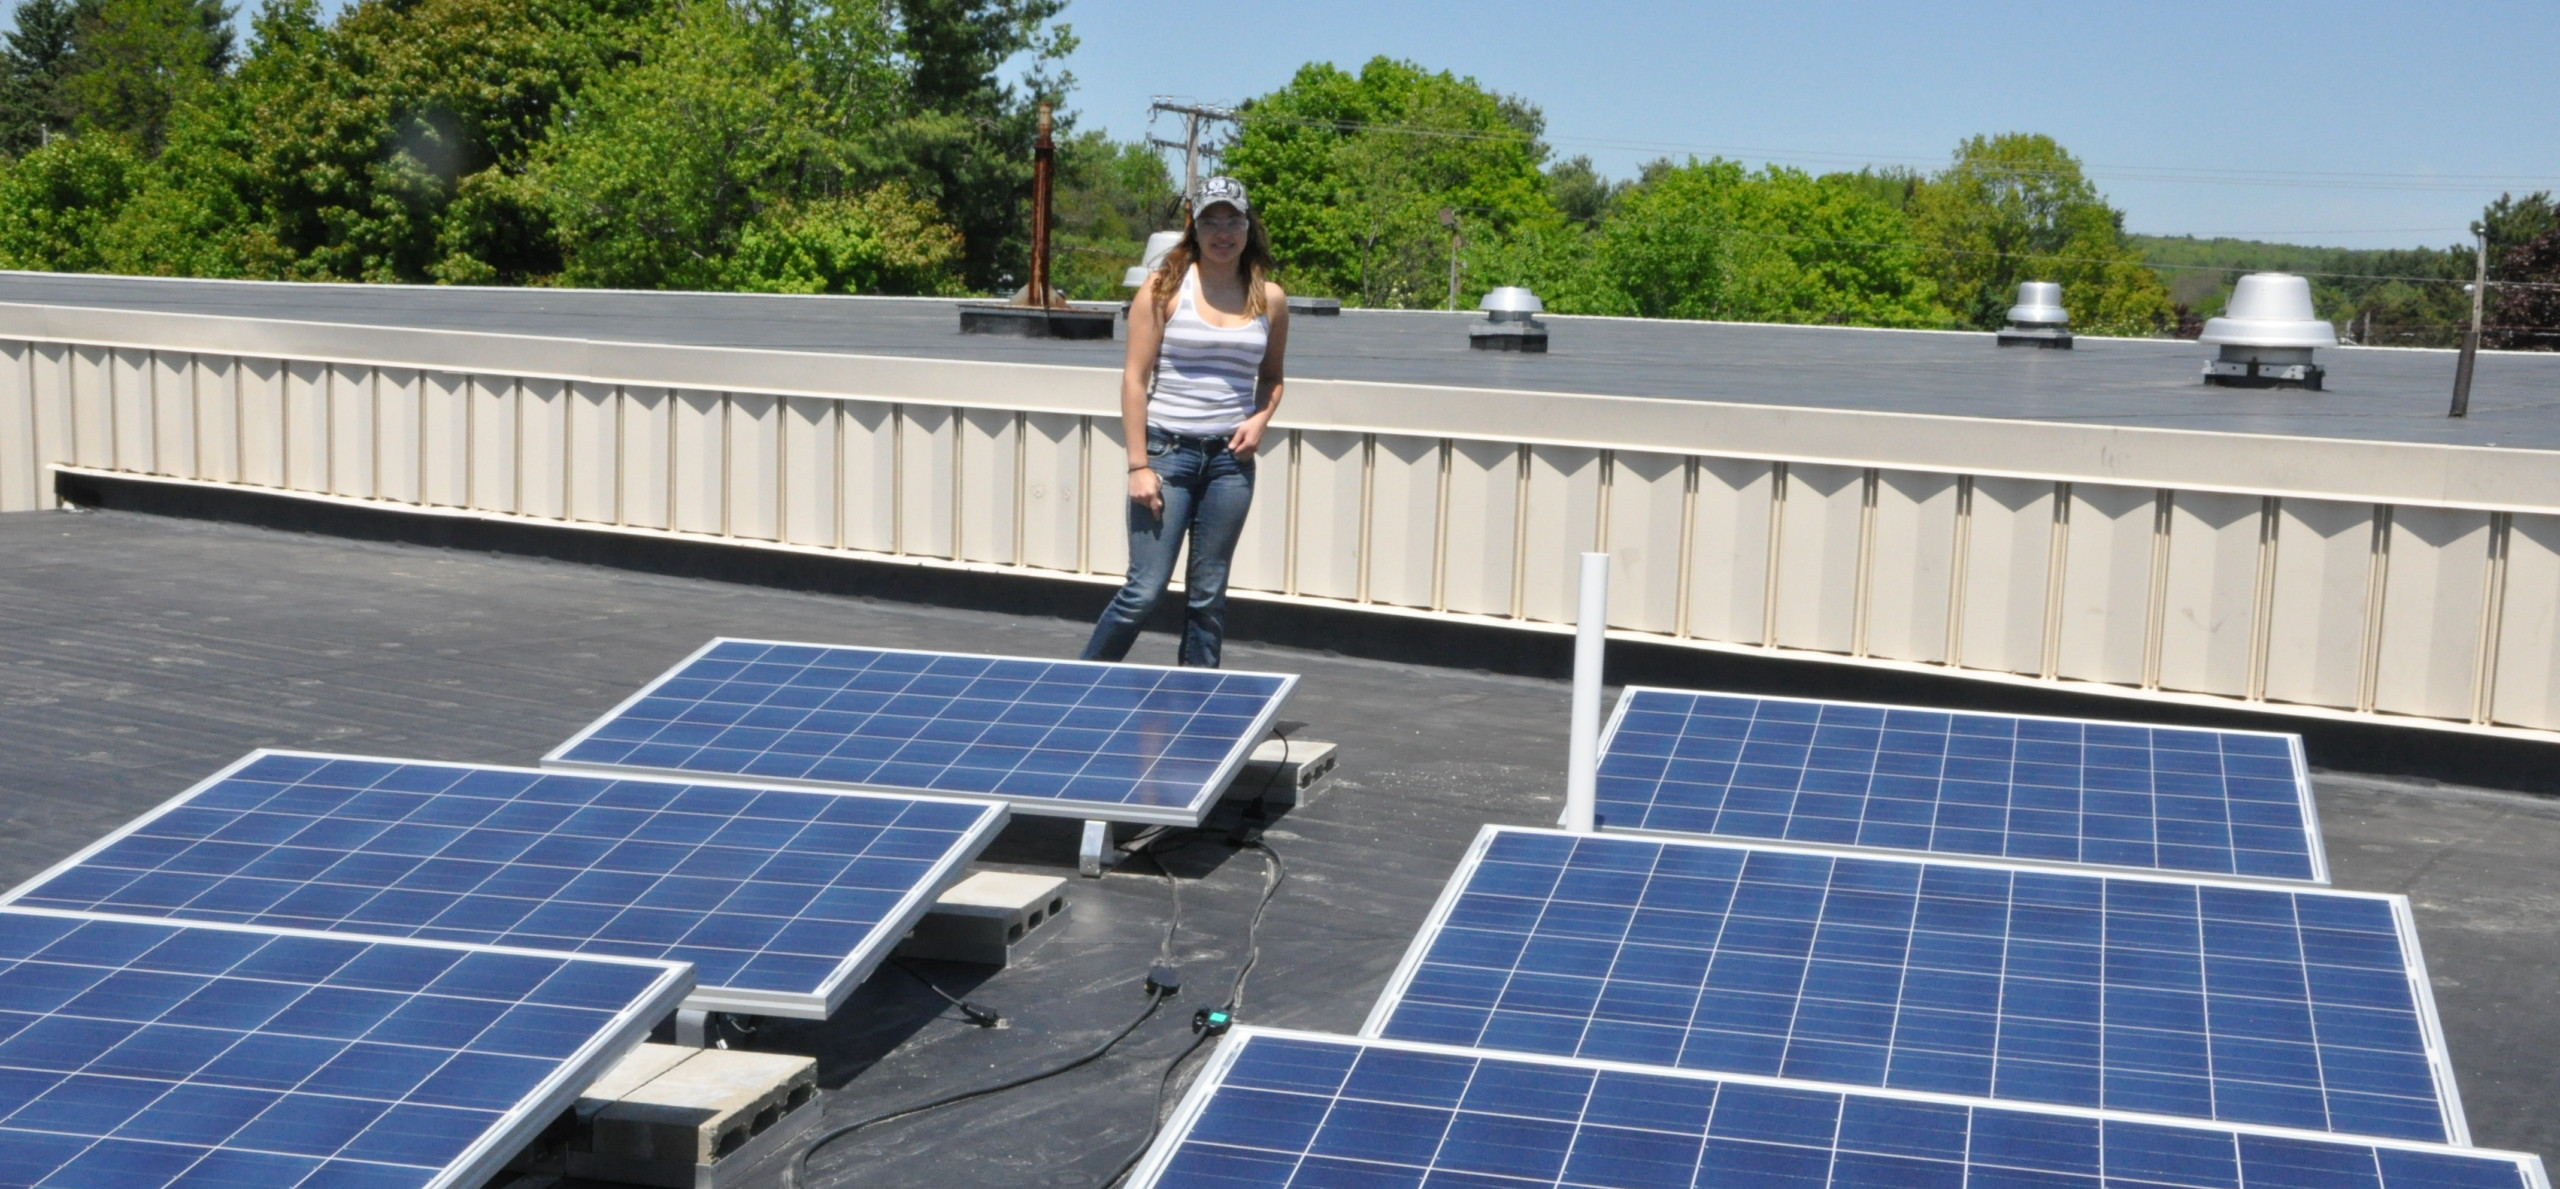 Solar array installed by students at Mid-Maine CC